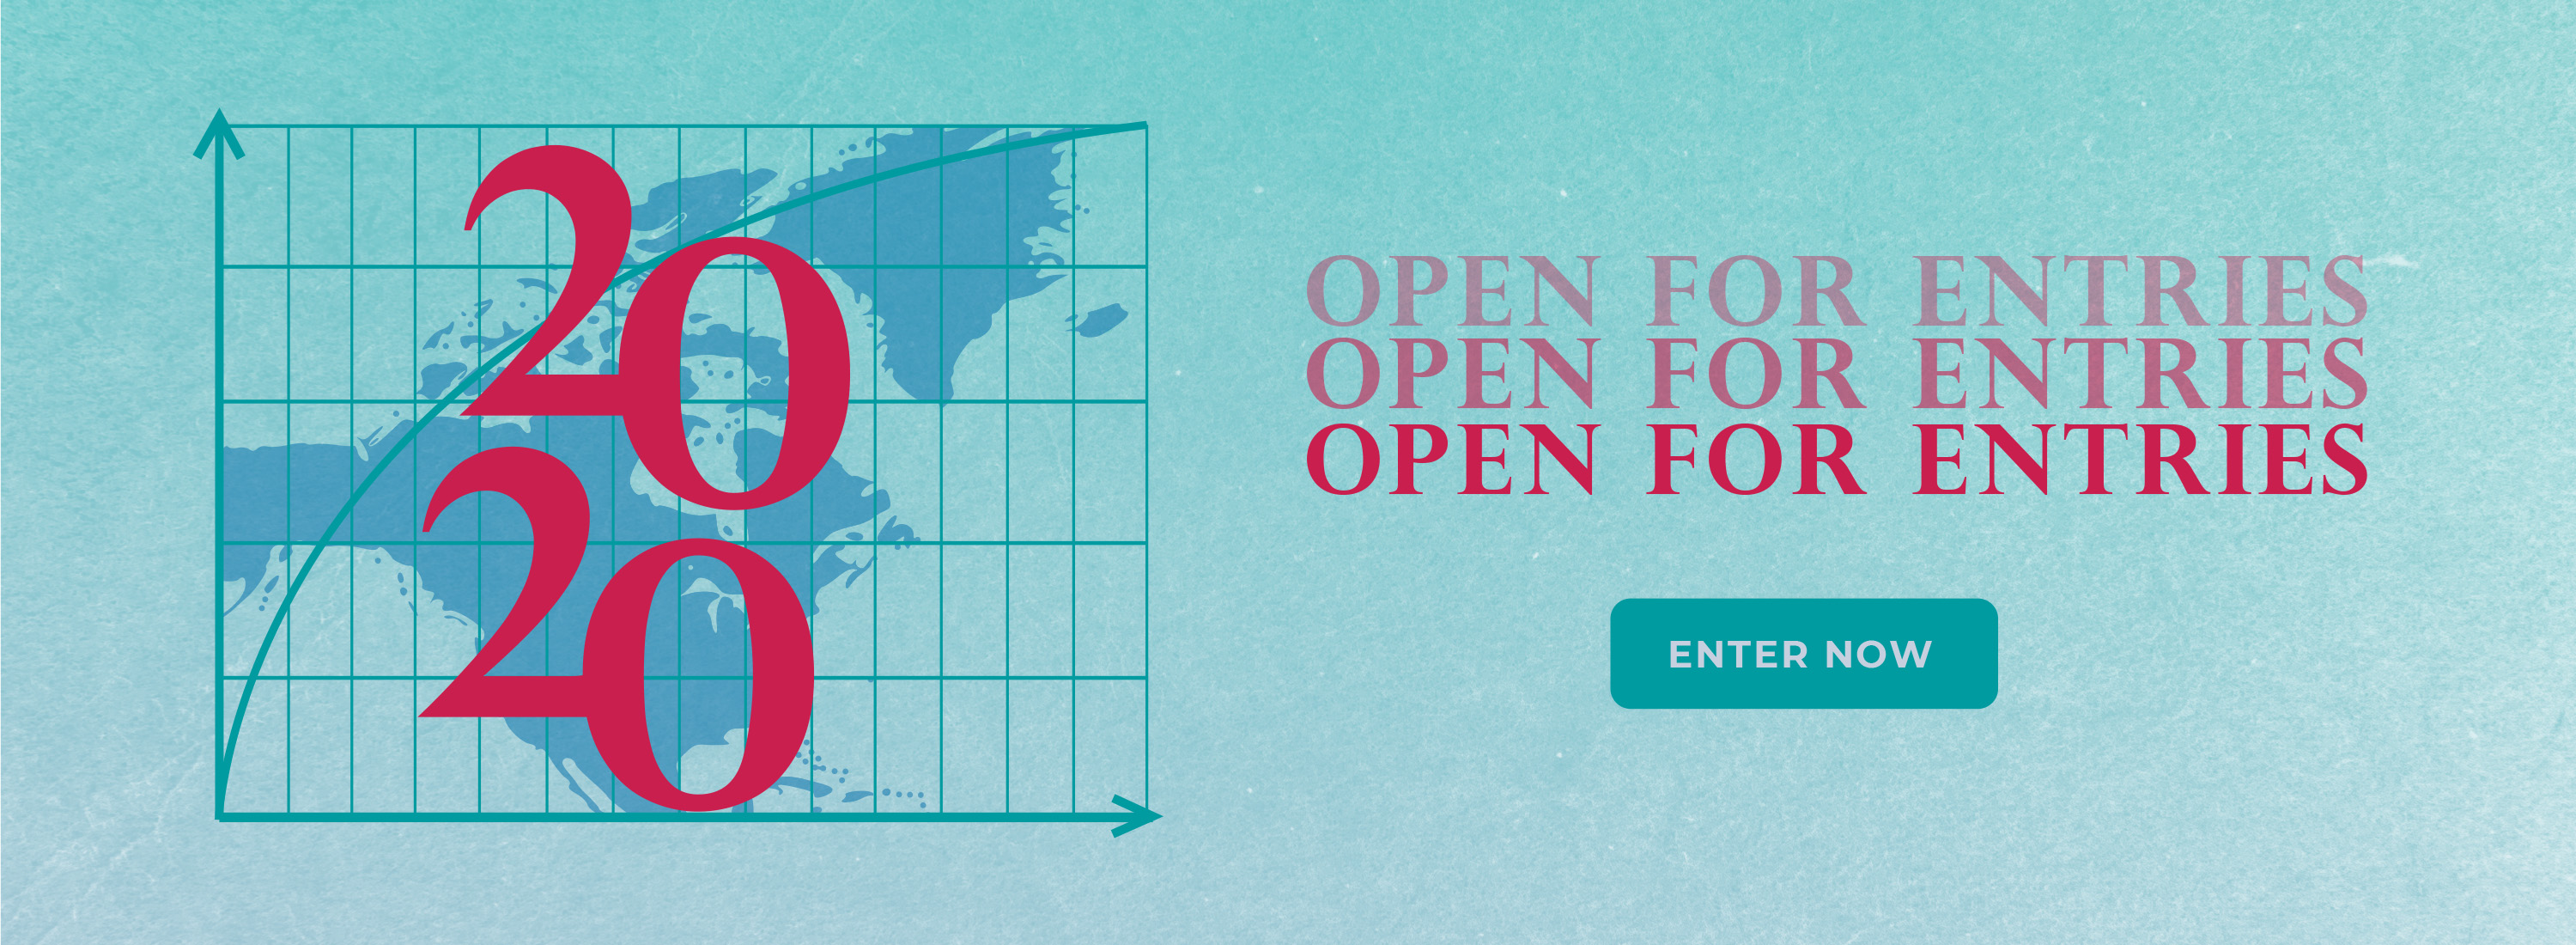 NYF's AME Awards open for entries; deadline to enter competition is Sunday, December 15, 2019